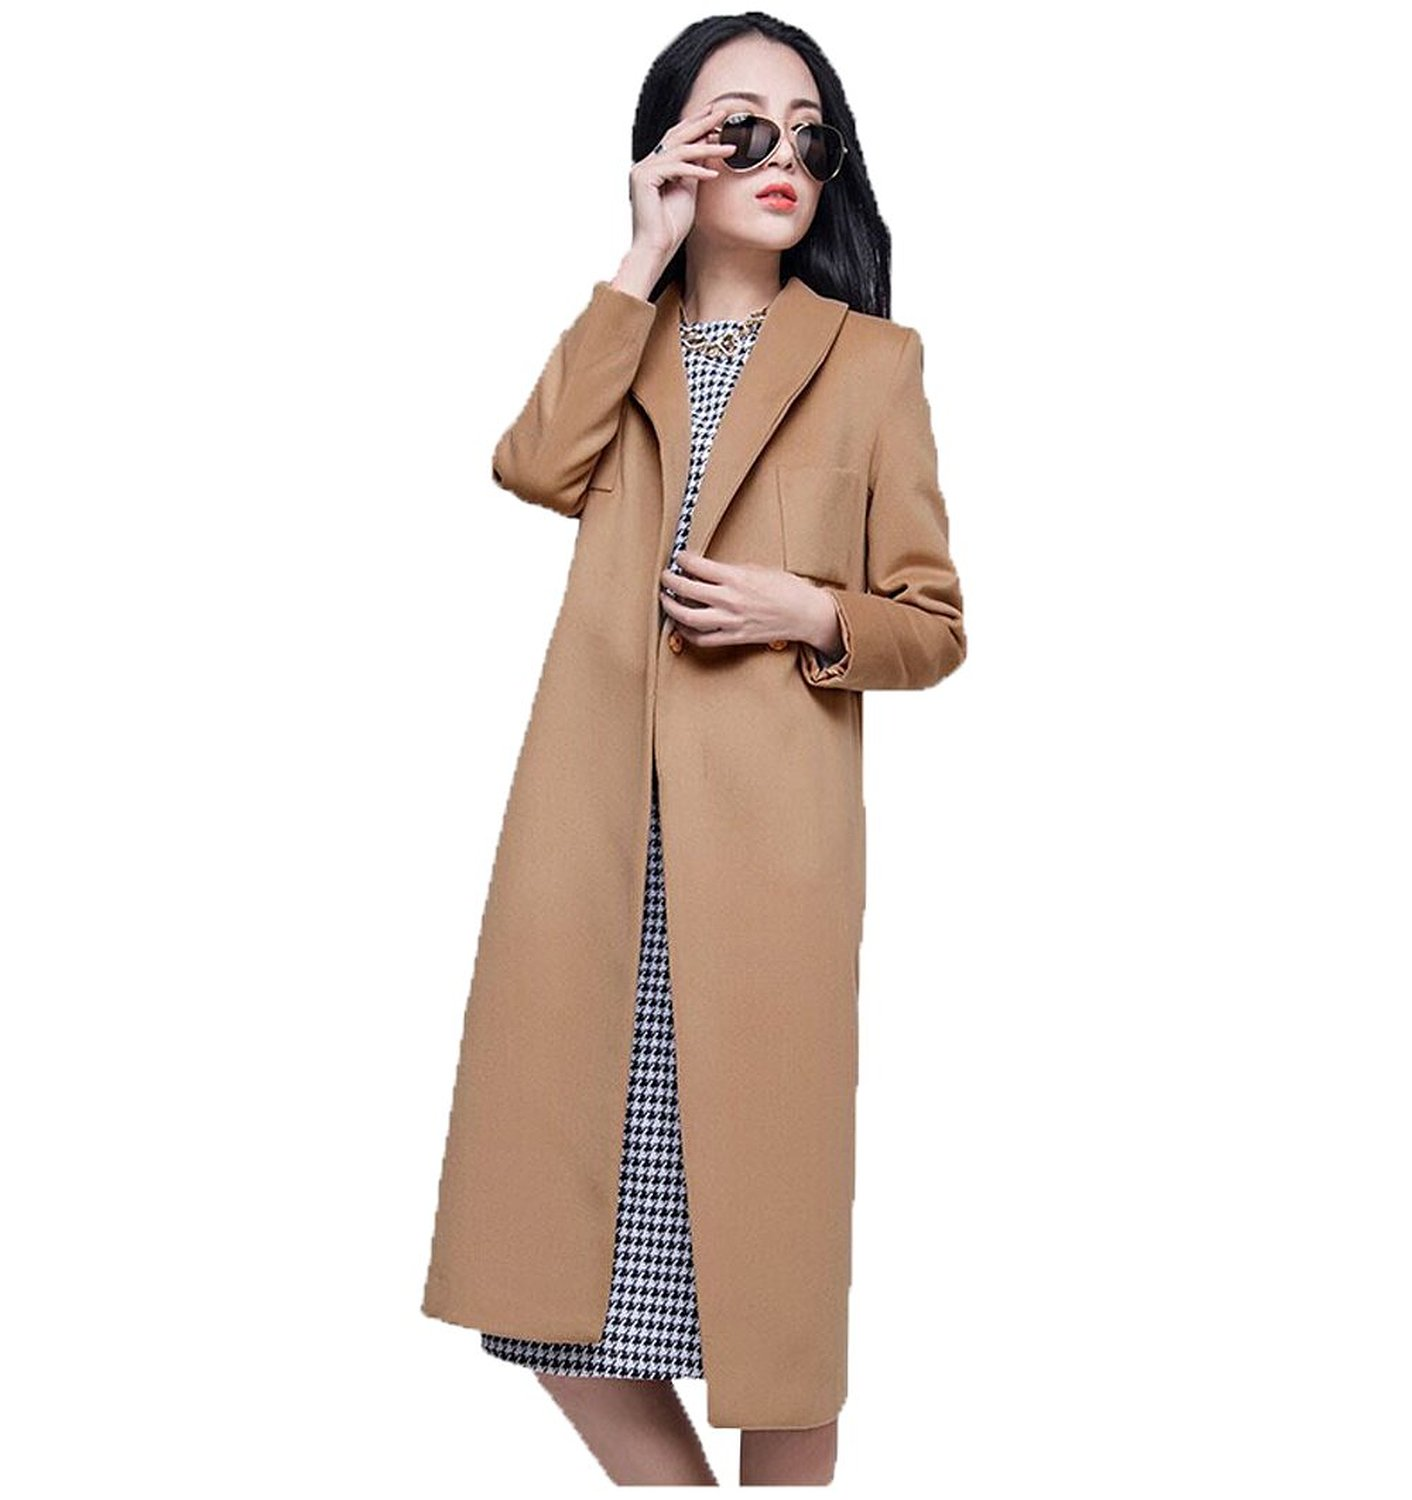 Bofeifs long pattern chic fit and flare long sleeve women's woolen coat at amazon women's coats shop